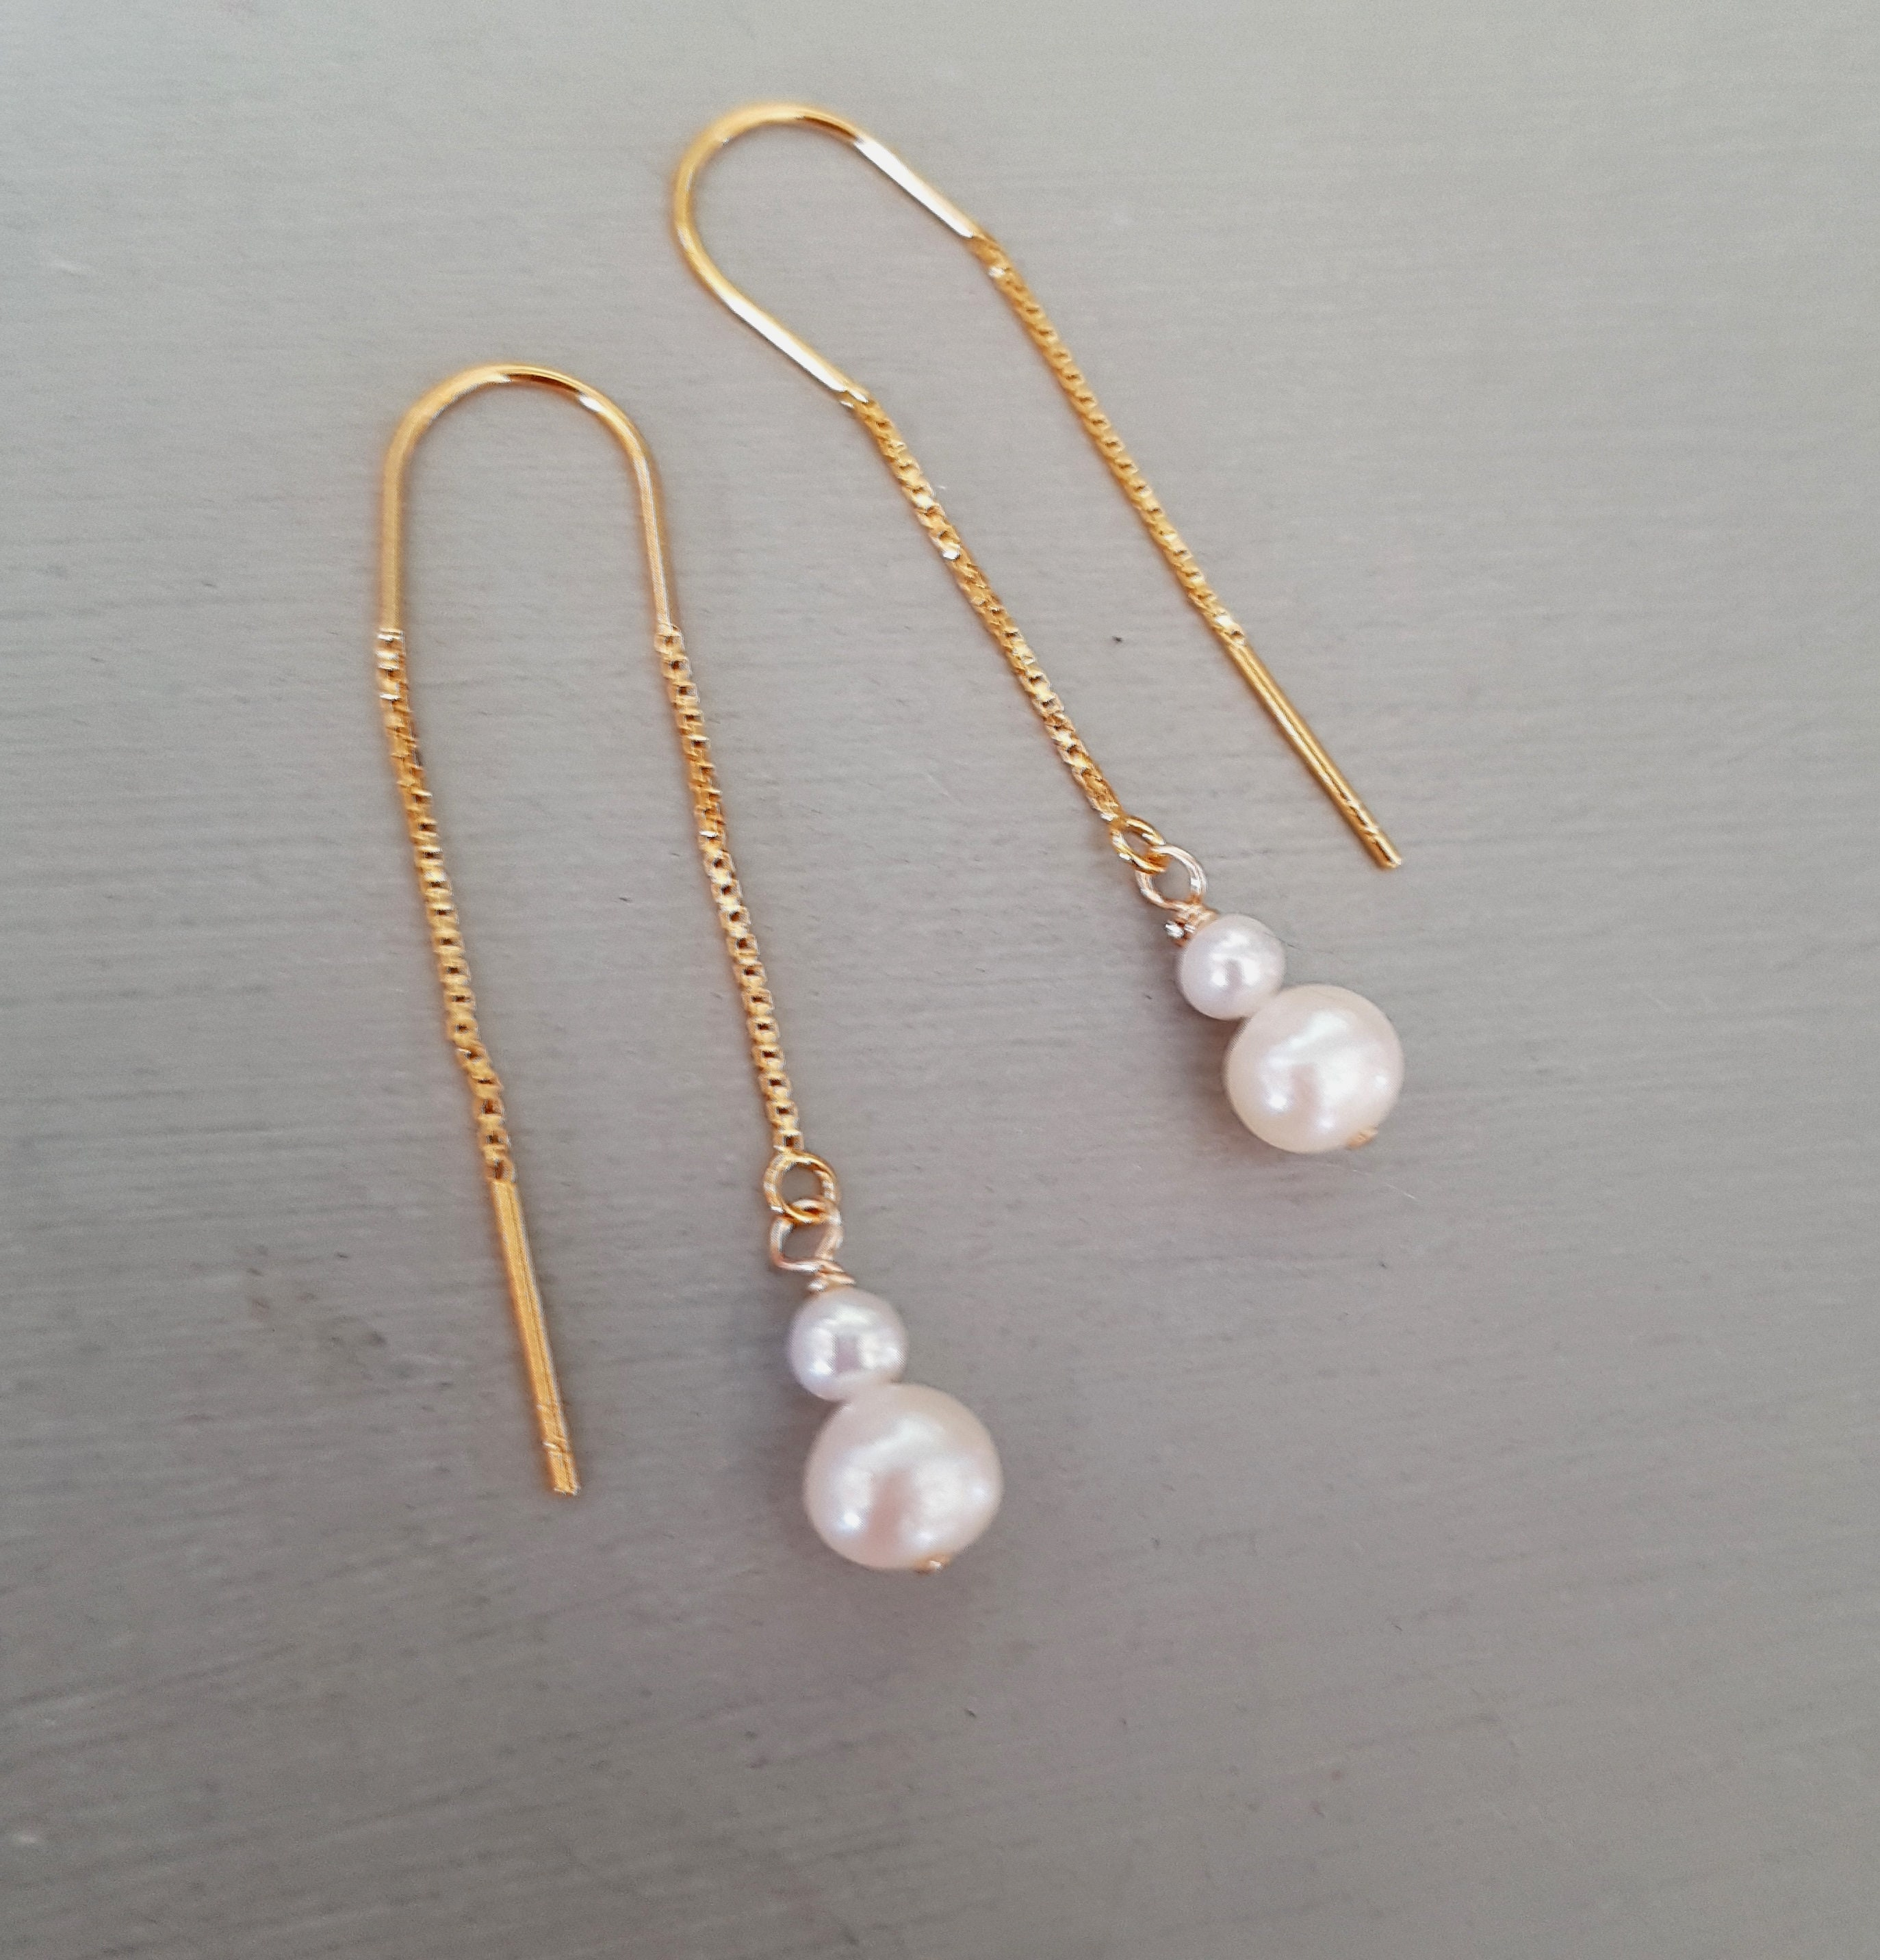 online in earrings hawaii handmade tahitian collections real shop pendant rose jewelry black gold pearls island pearl